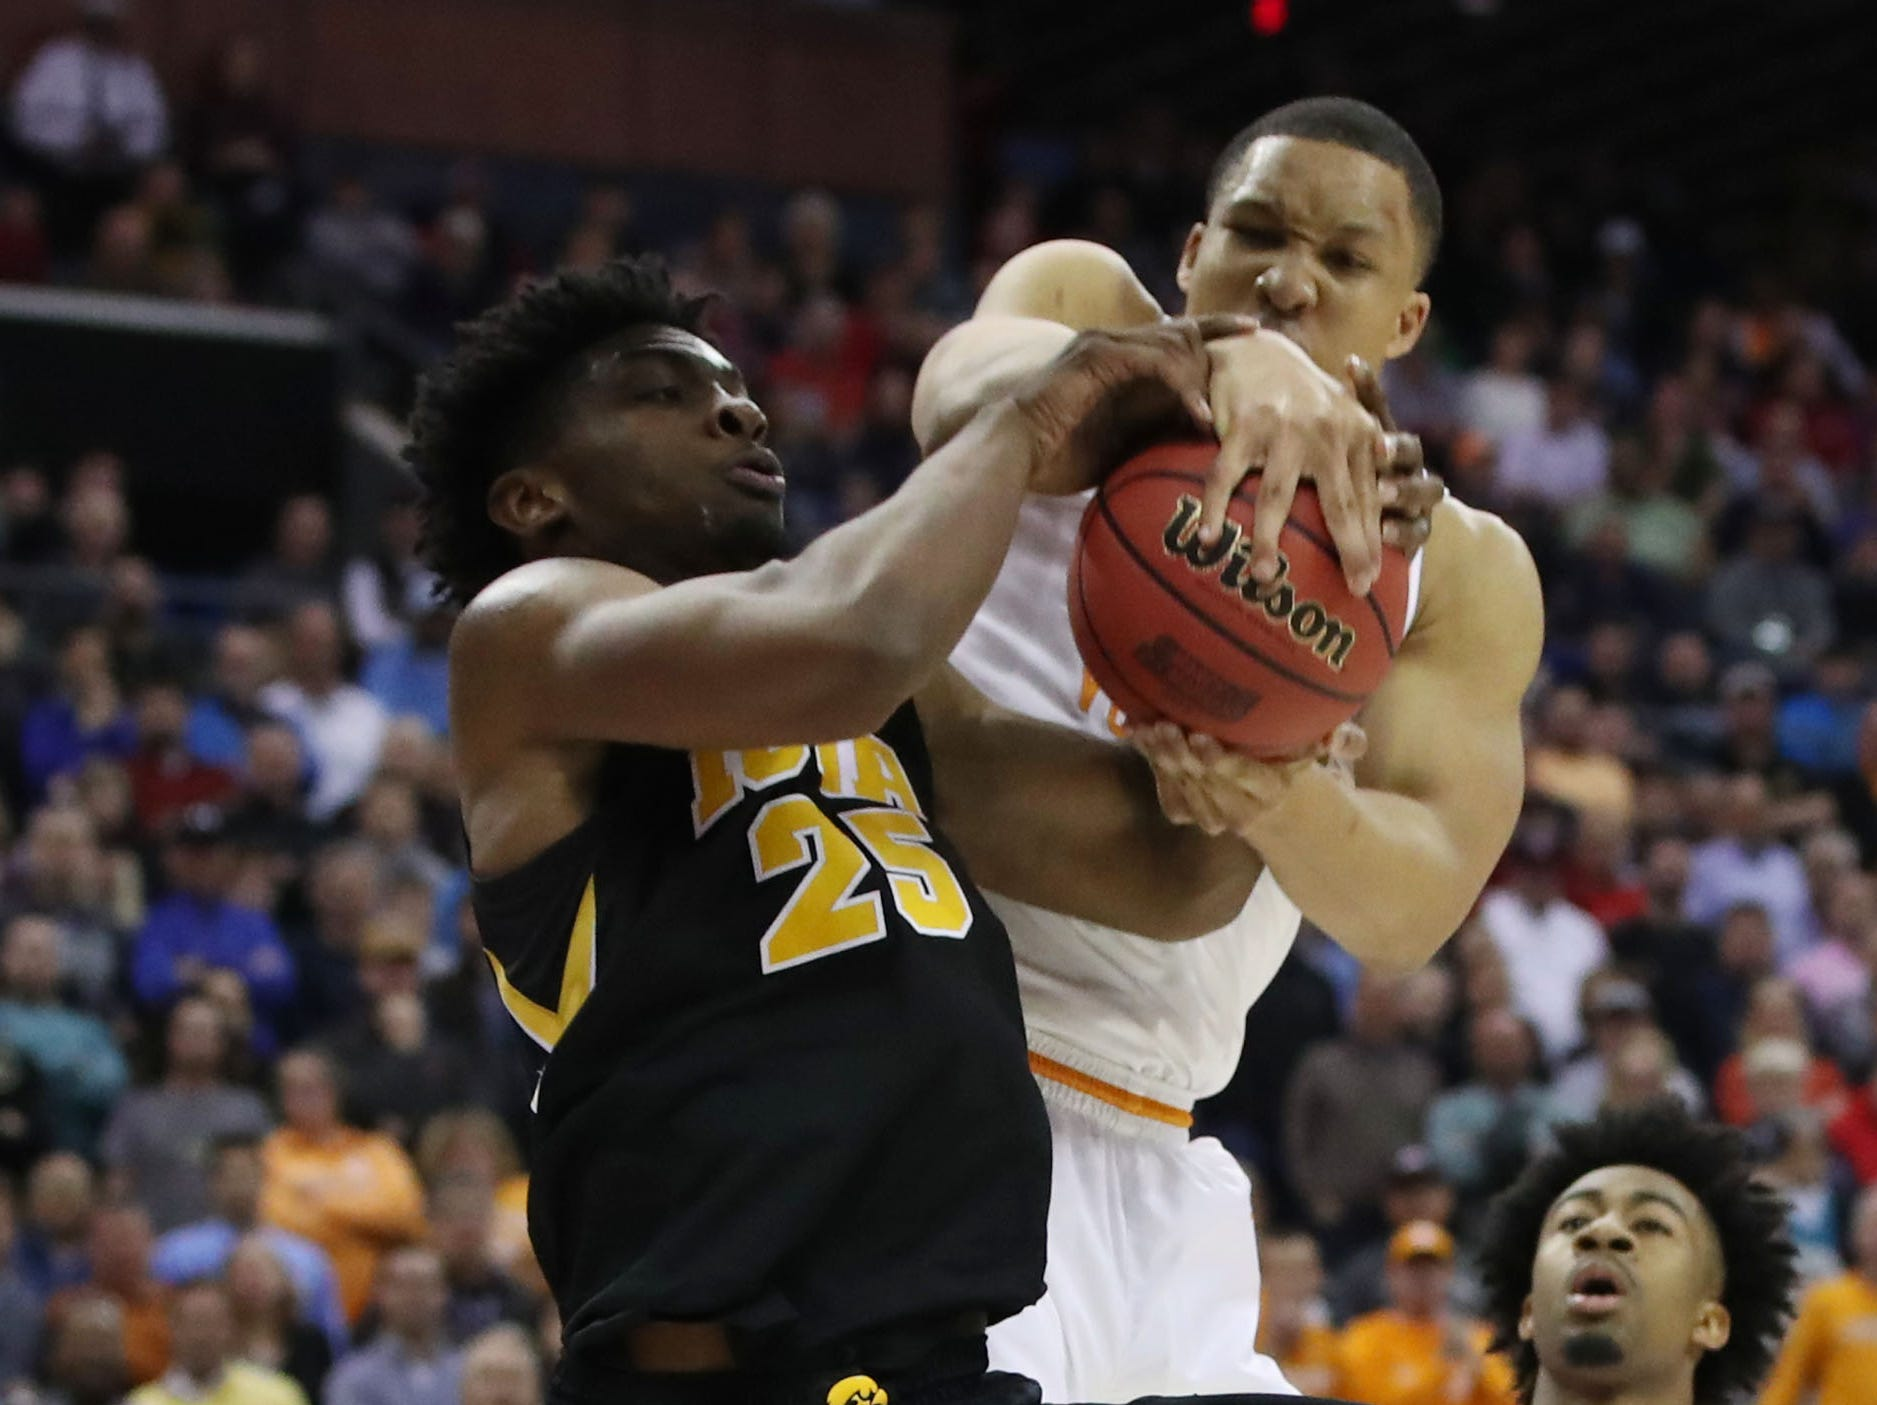 Tennessee Volunteers forward Grant Williams (2) steals the ball from Iowa Hawkeyes forward Tyler Cook (25) in the second half in the second round of the 2019 NCAA Tournament at Nationwide Arena.